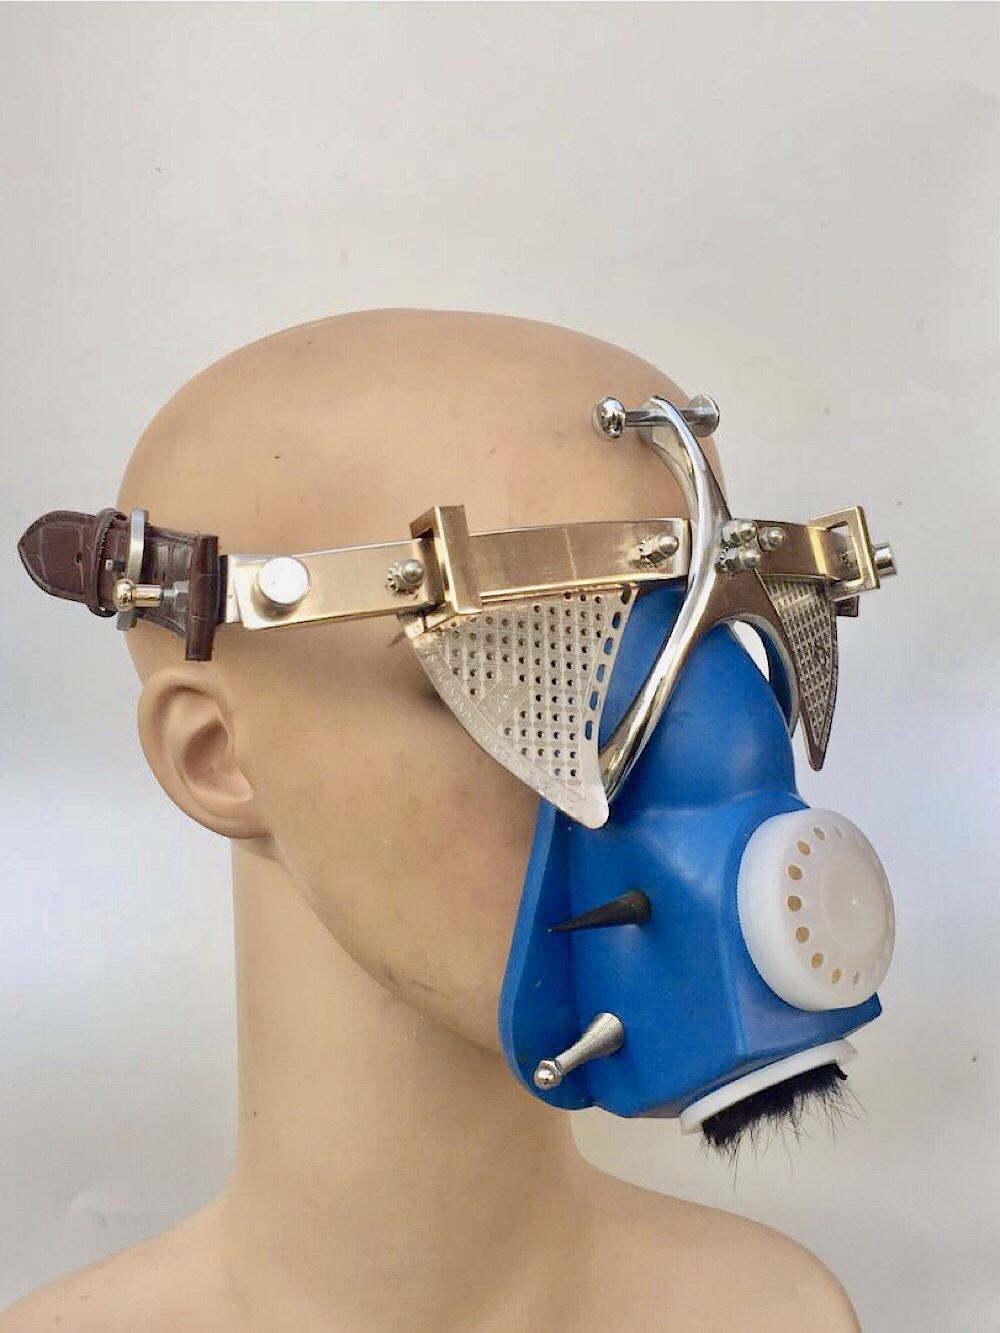 Metal mask with muzzle, gas mask with spikes for Photoshoot video filming Cosplay